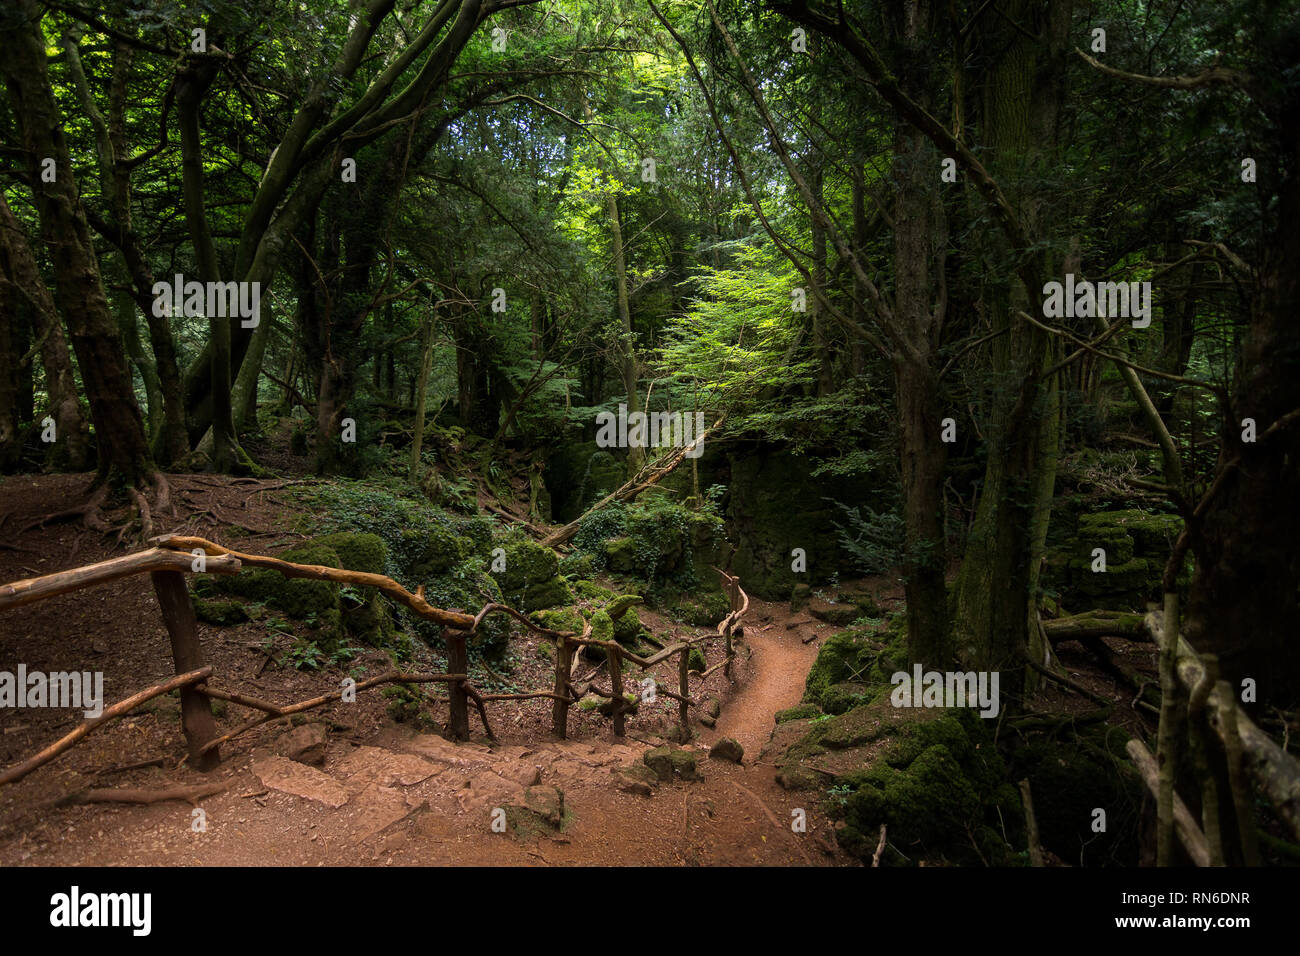 A basic dirt path down steps leads deep in to the dark Puzzlewood forest, Coleford, England. - Stock Image